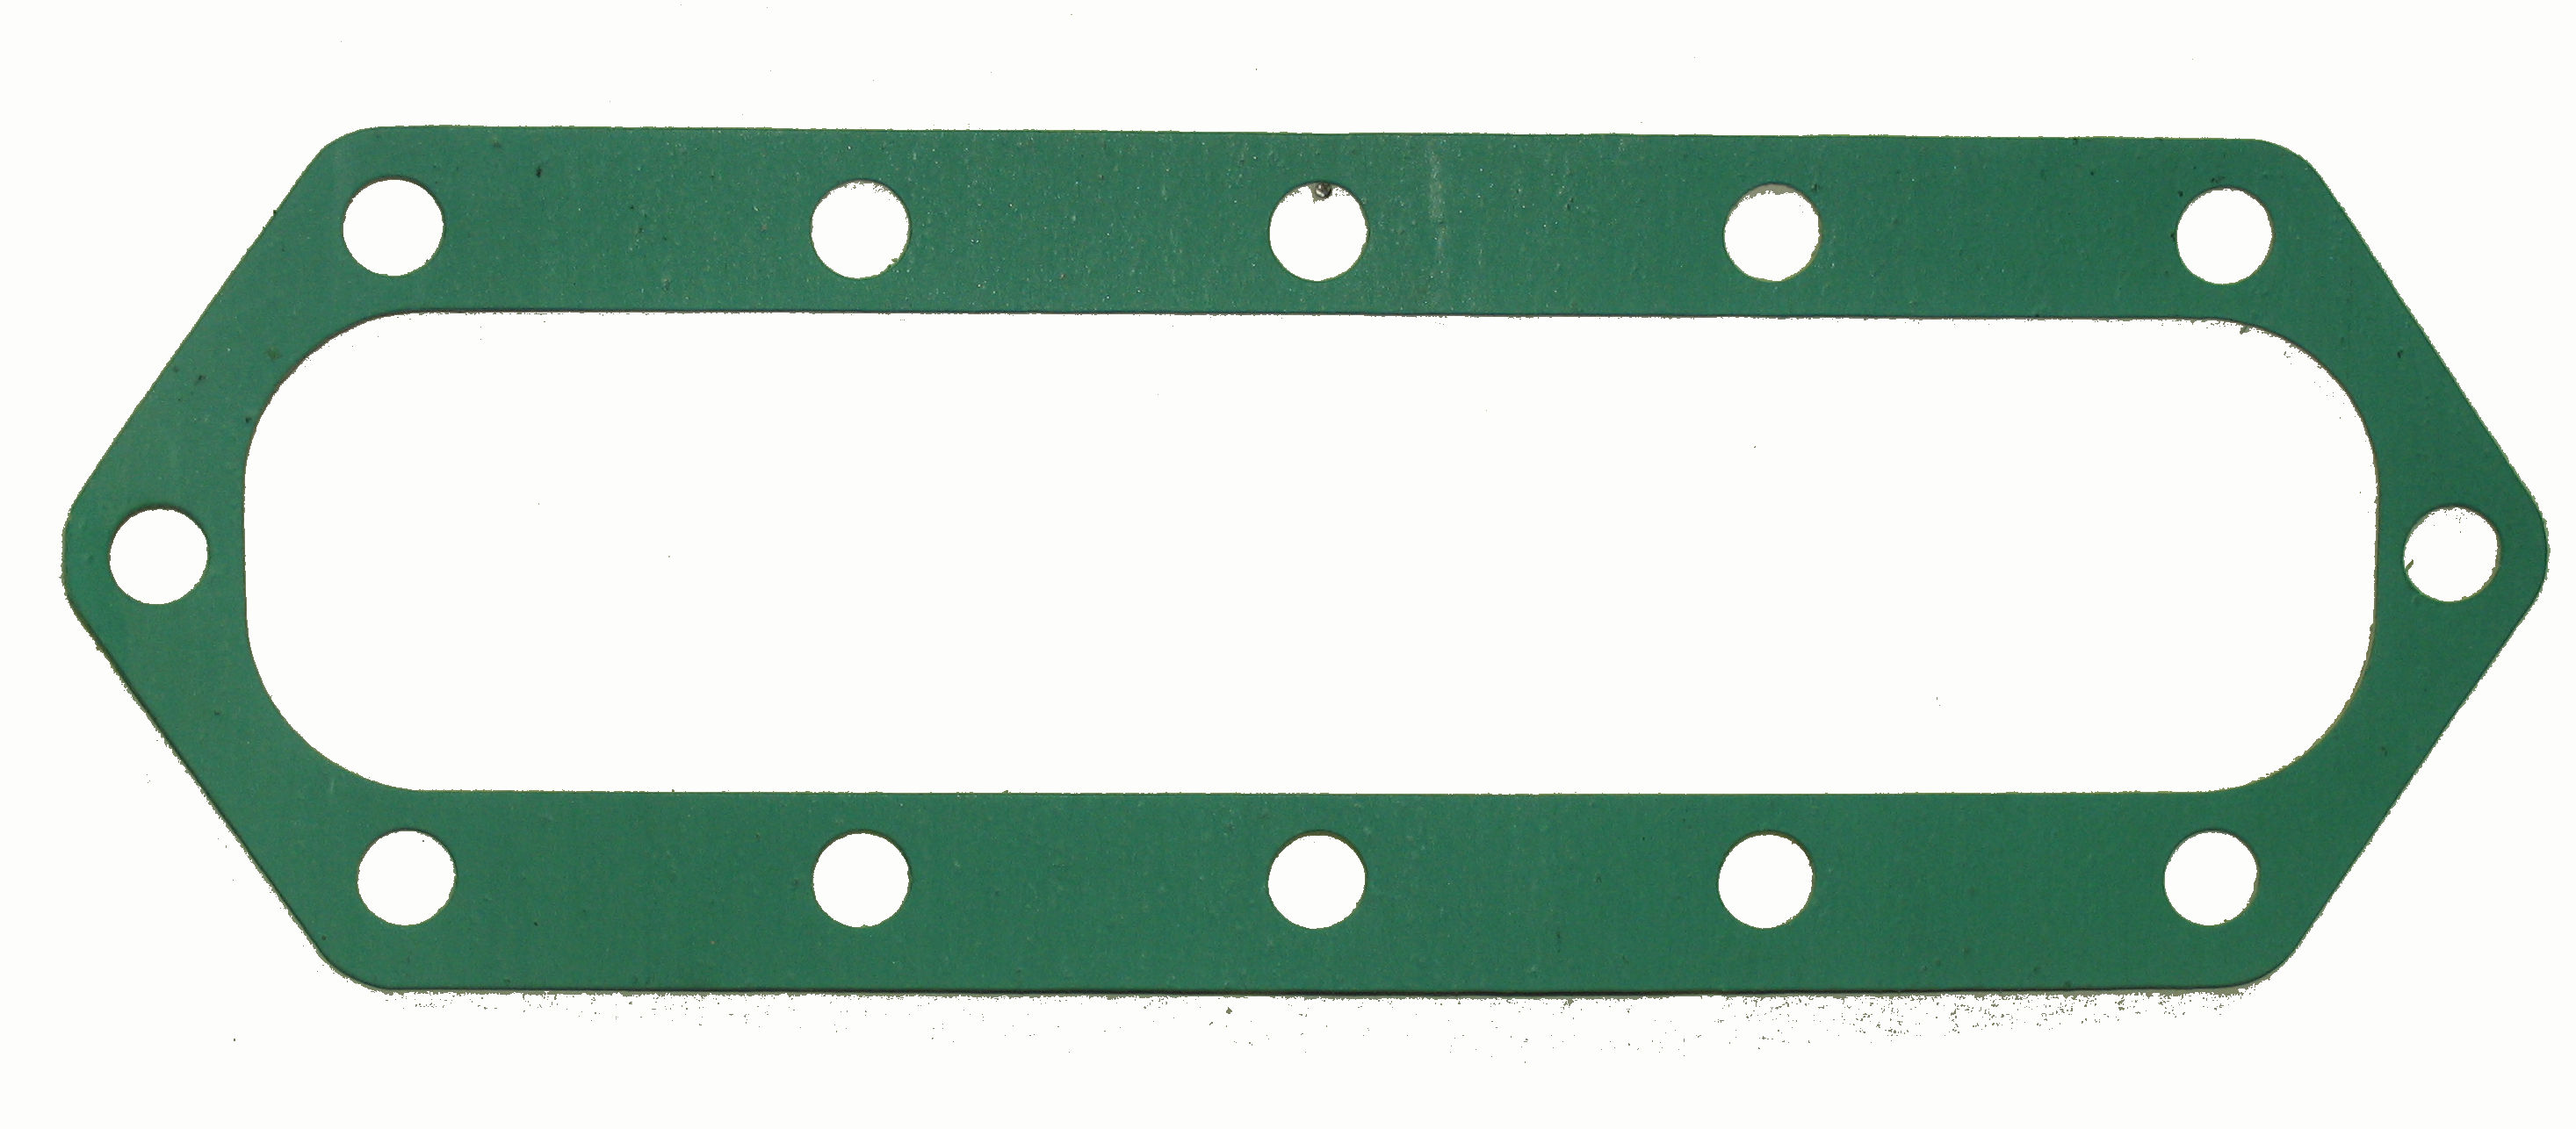 GKT-6361 Gasket: R/N GKT-959 (Made in the USA)